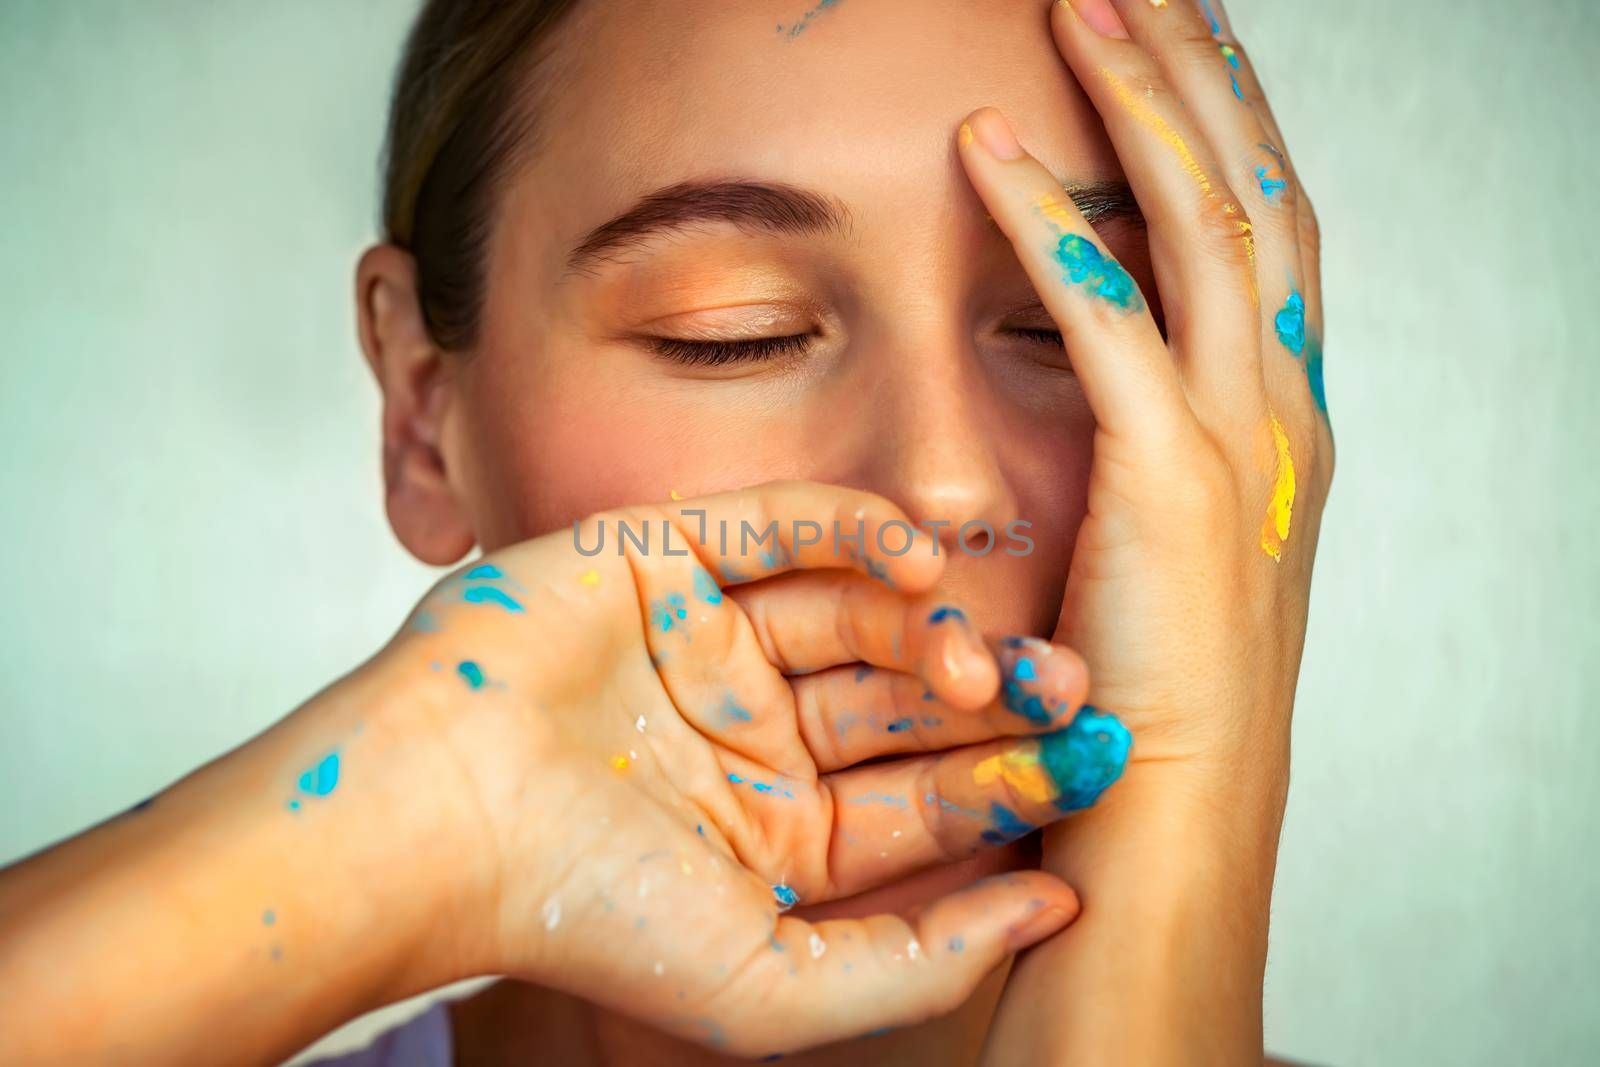 Conceptual photo of creativity and art, beautiful woman with a dreamy face and paint-stained fingers, mindfulness, and visualization on a new idea